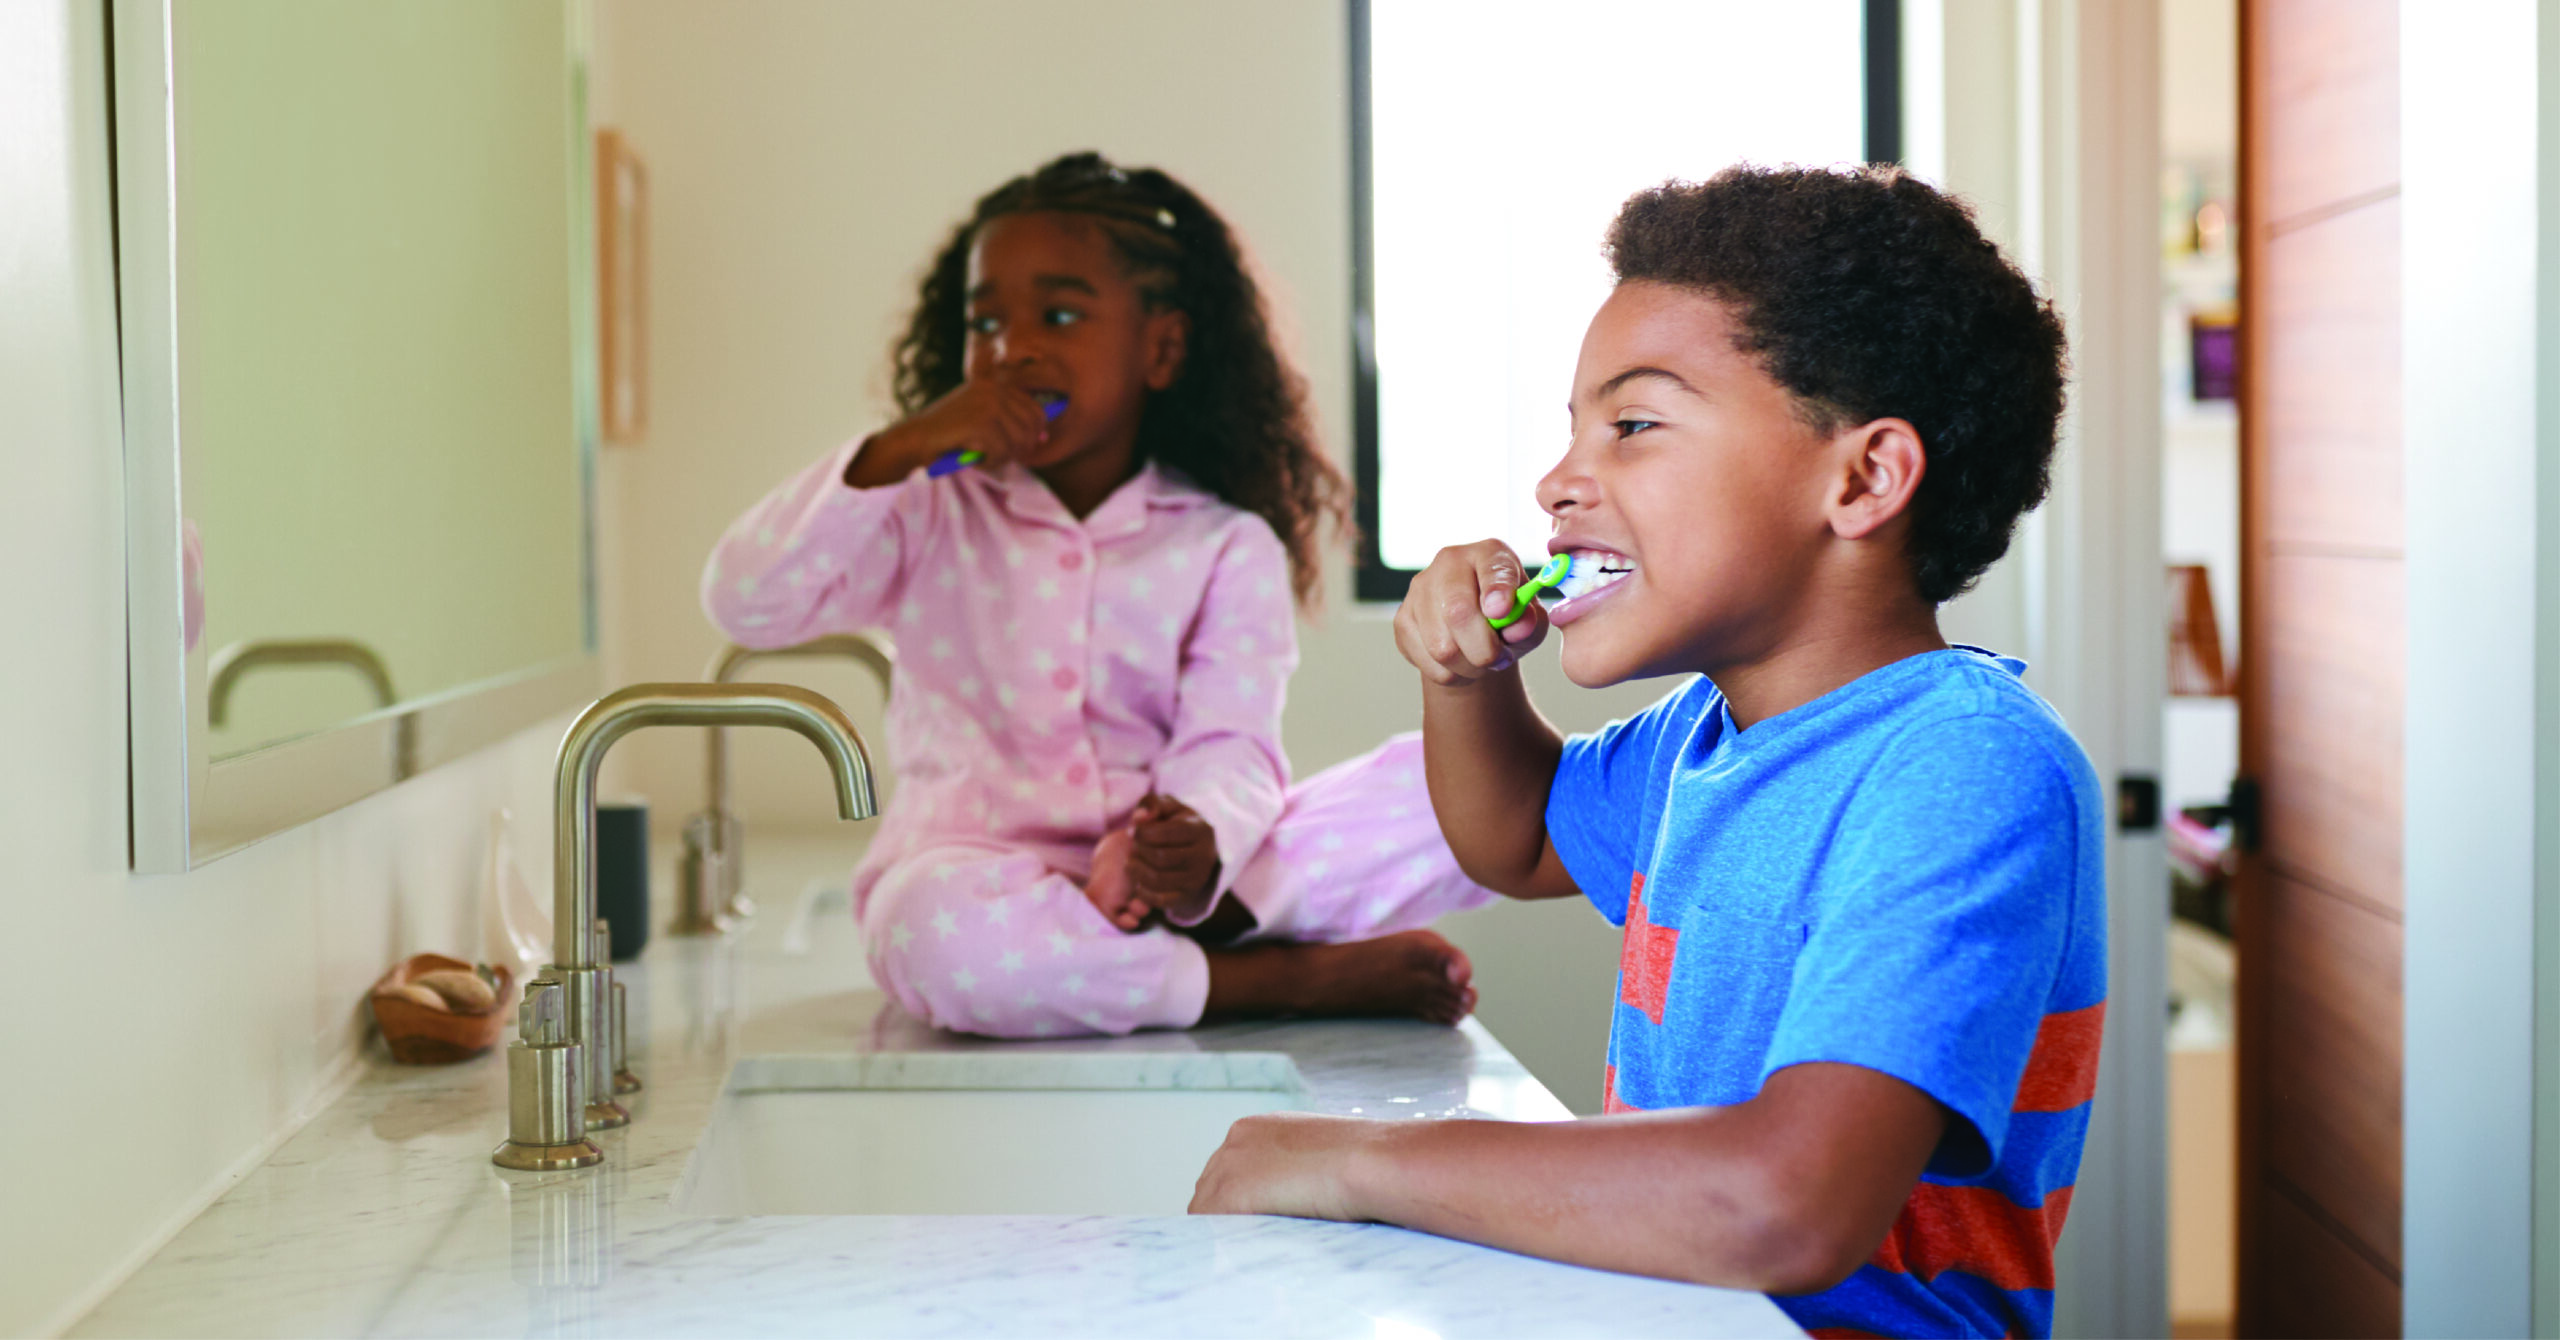 THE IMPORTANCE OF CHOOSING THE RIGHT TOOTHBRUSH